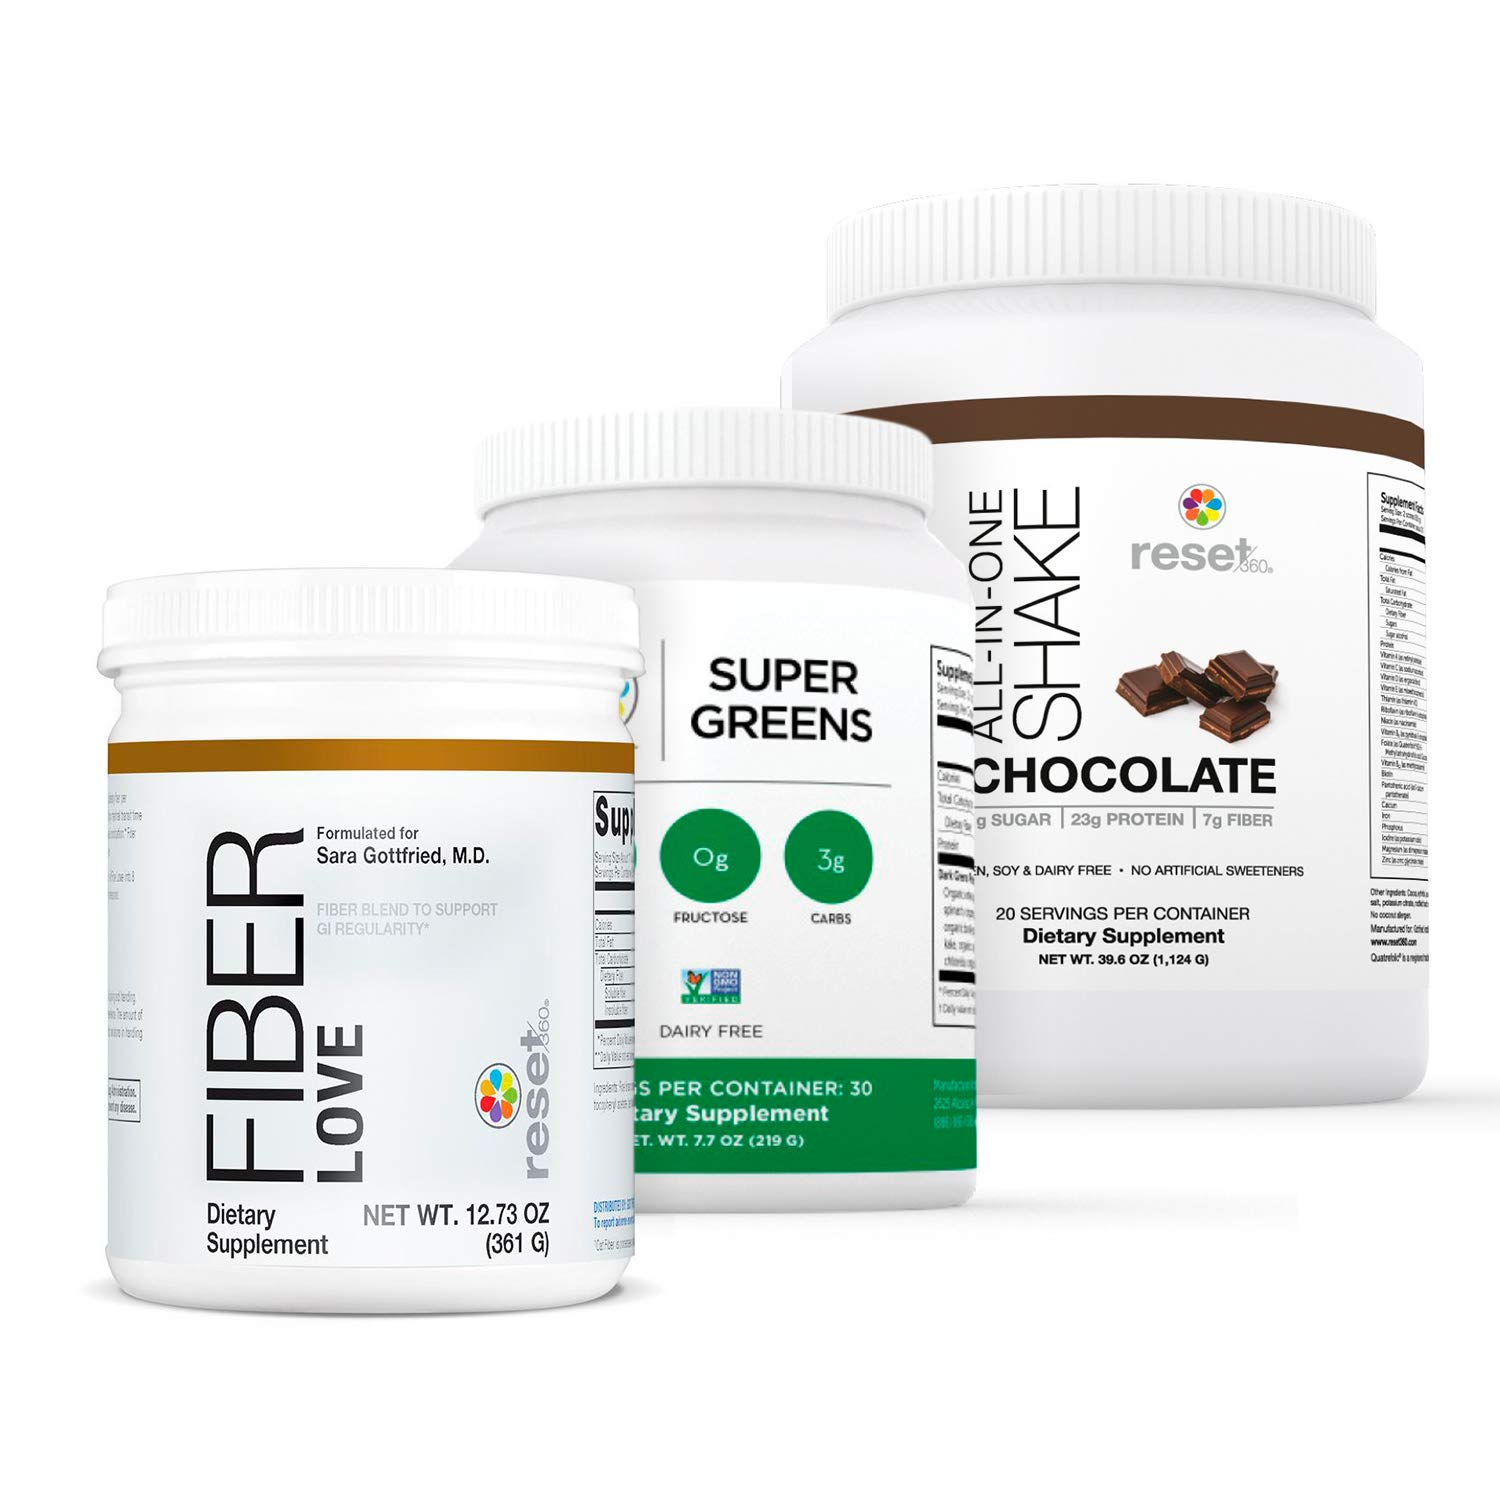 Reset360 Shake Kit Including Super Greens Superfood Diet Protein Powder, Fiber Love, Chocolate Protein Powder All-in-One Meal Replacement Shake by Reset360